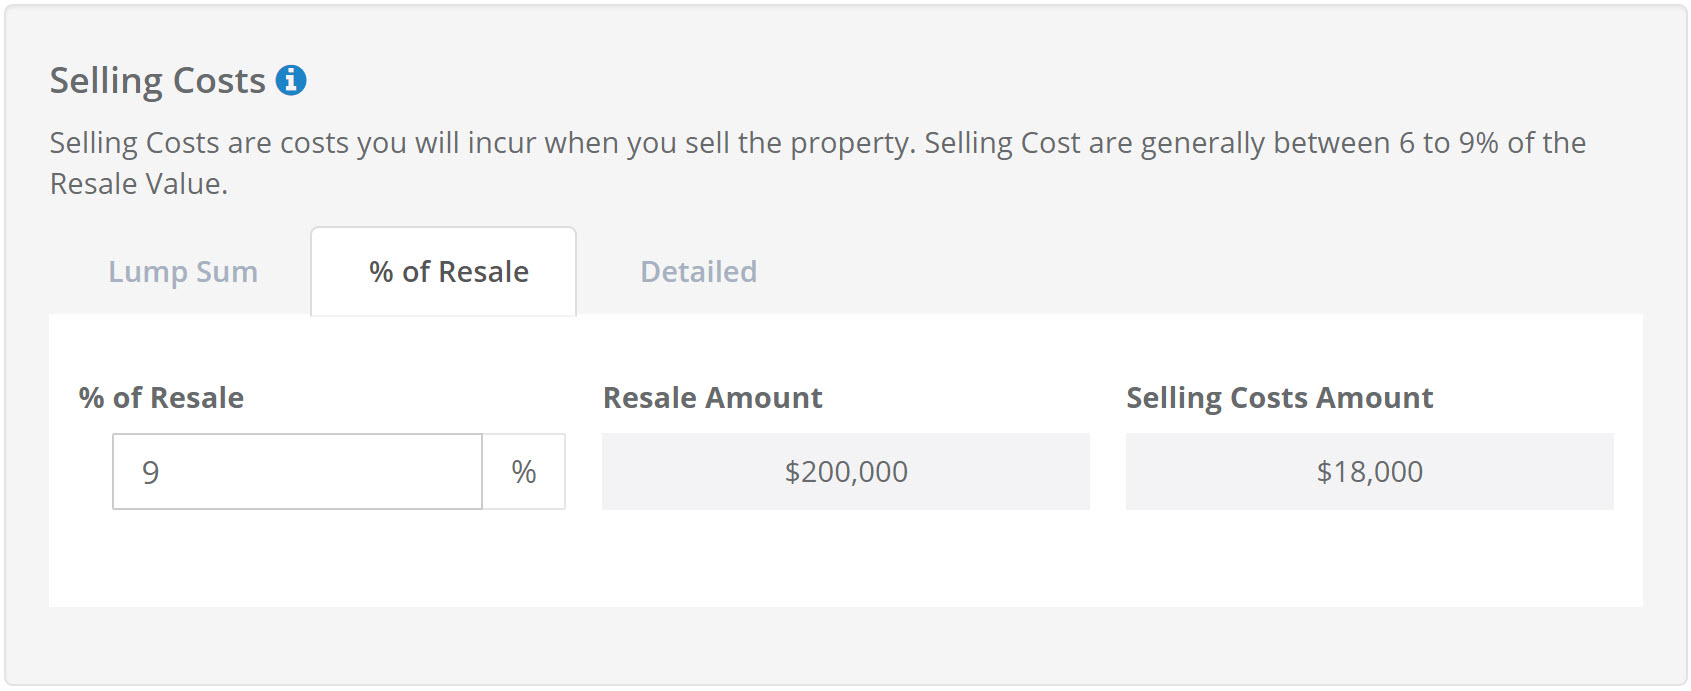 House Flip Selling Costs Calculator